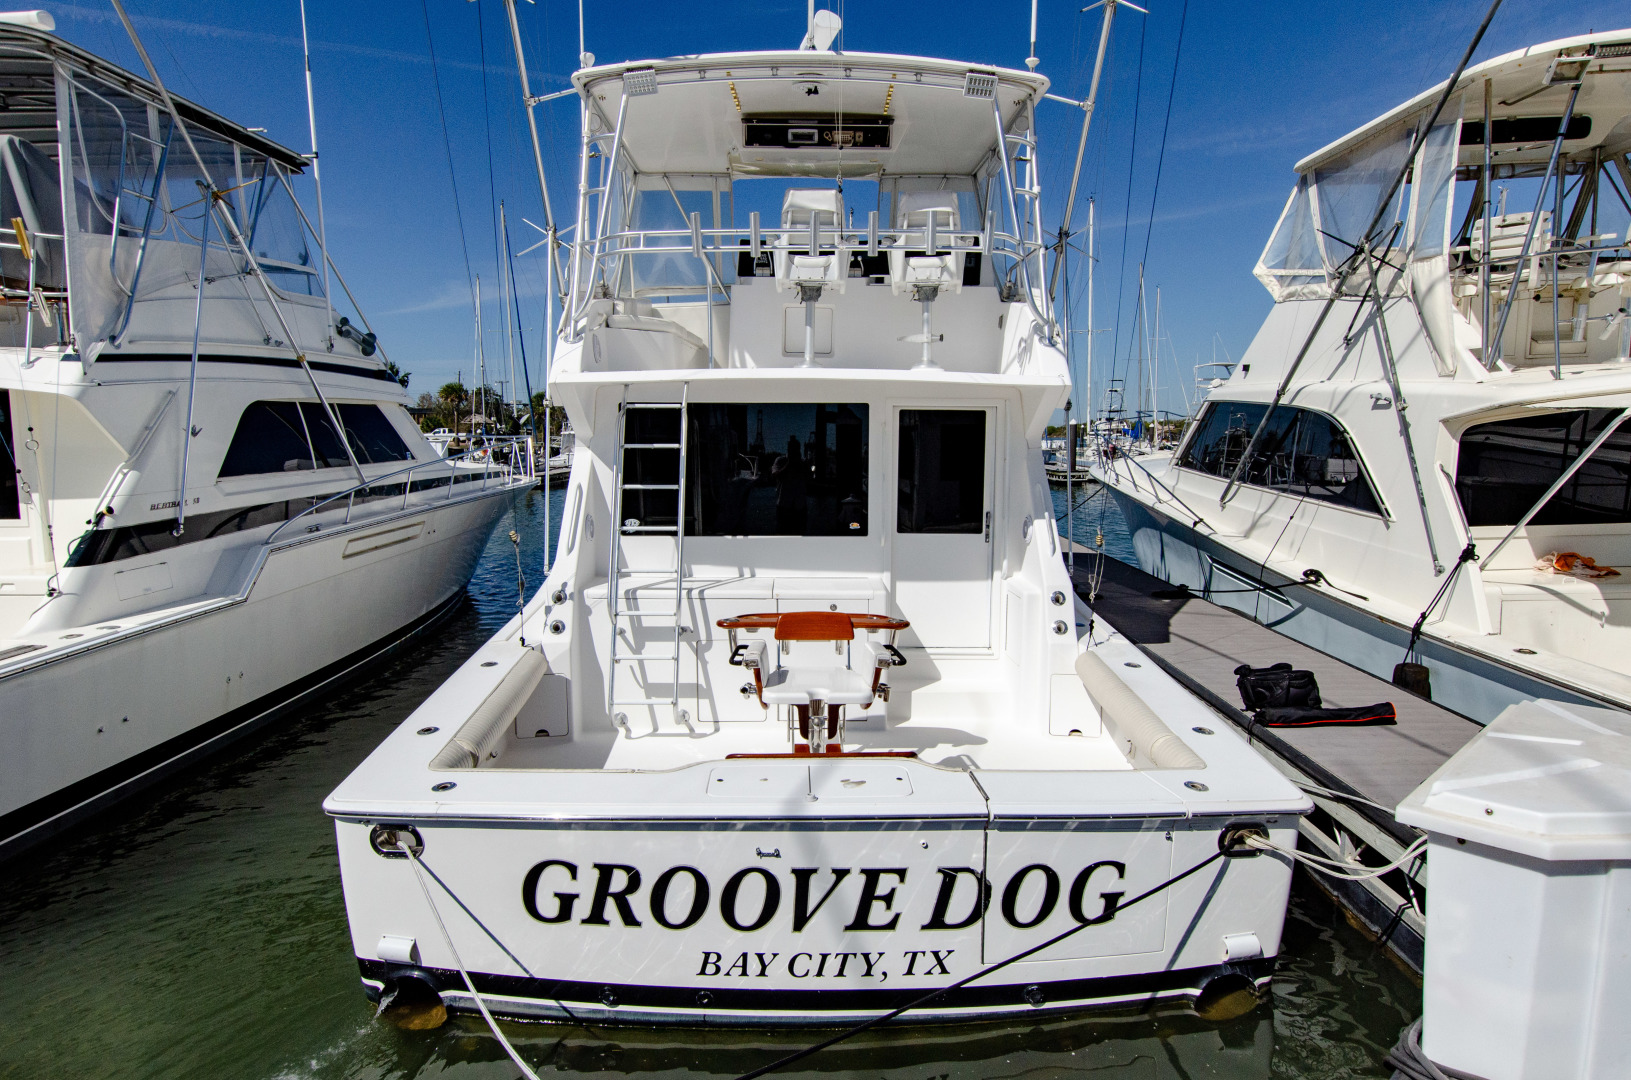 Viking-50 Convertible 2001-Groove Dog Freeport-Texas-United States-Viking 50 Convertible 2001 Groove Dog-1540617 | Thumbnail